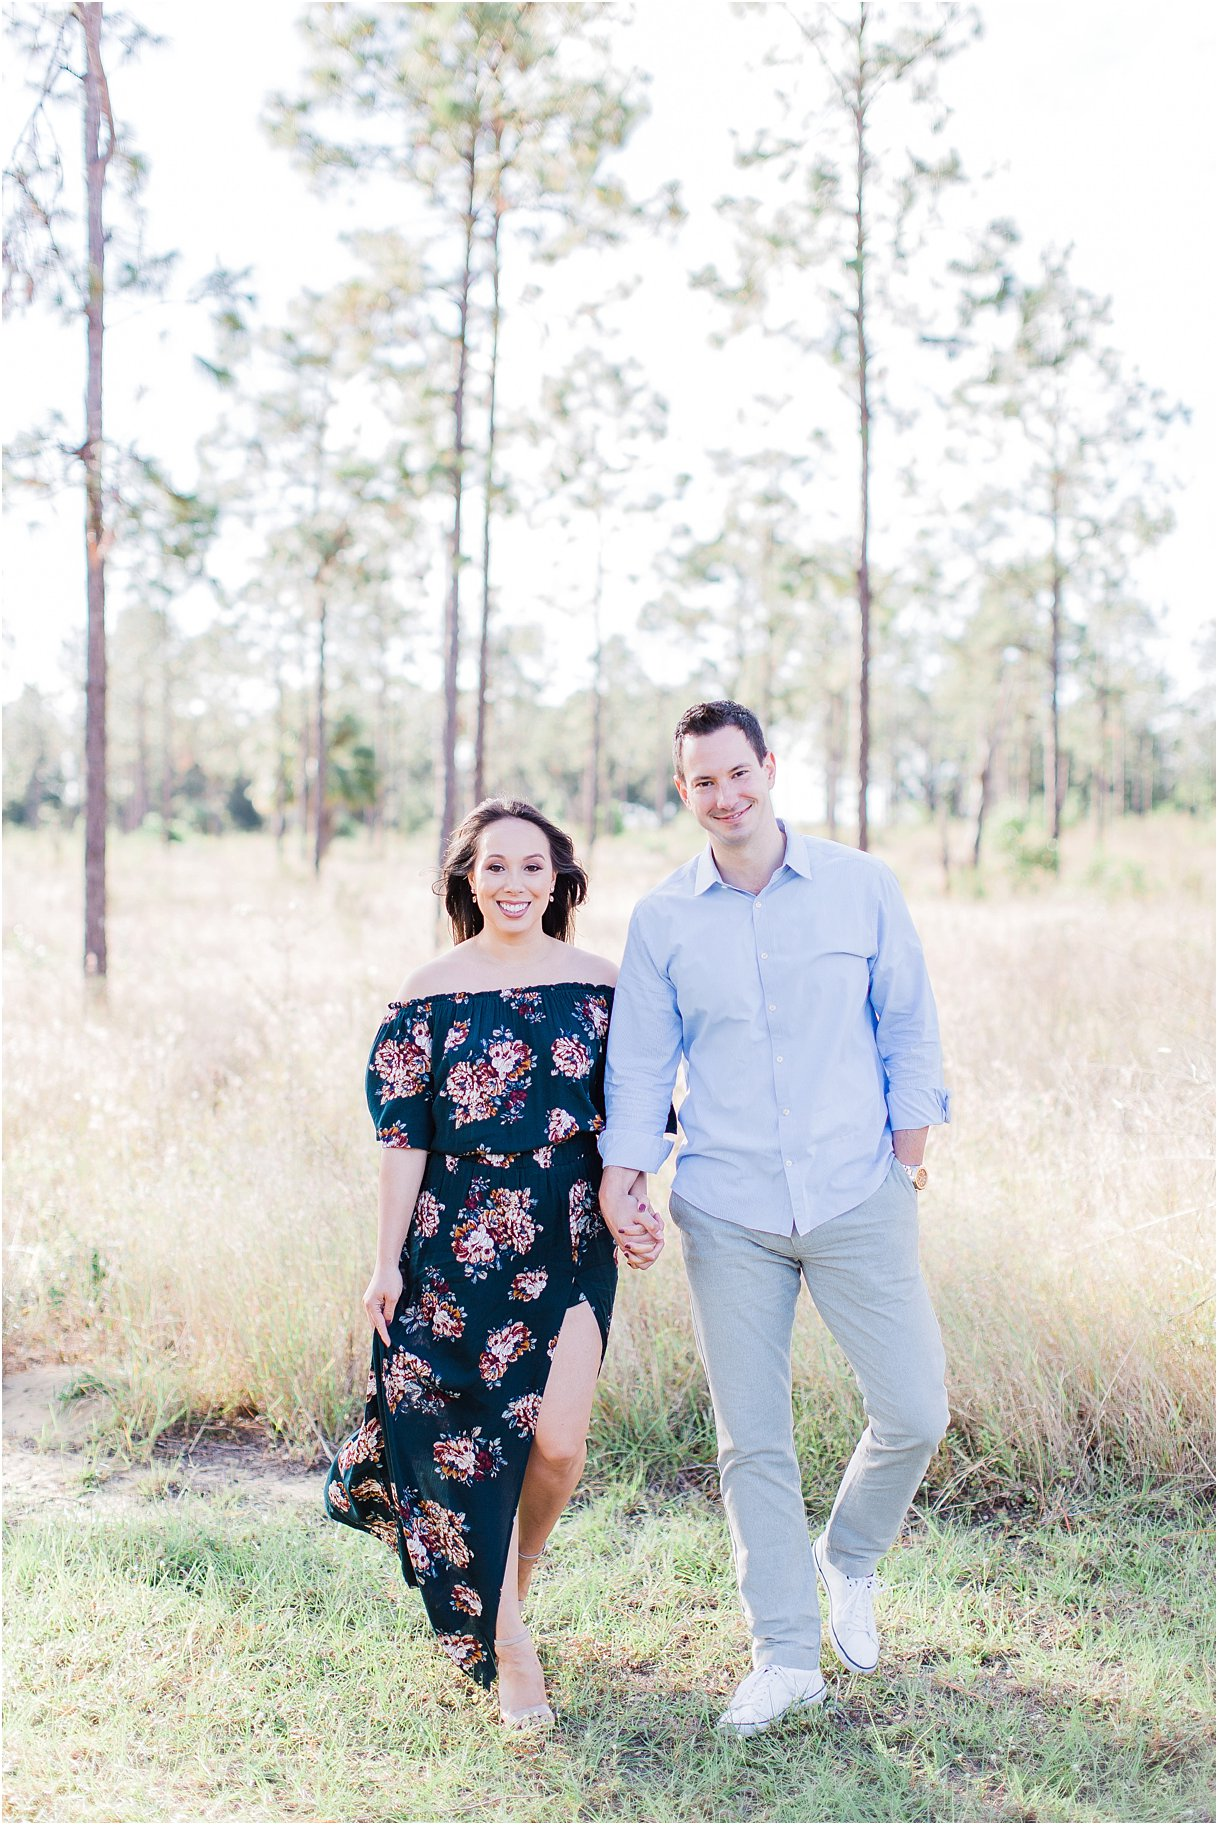 Bok Tower Engagement Session Fall Florida Tampa St Augustine DeLand Wedding Photographer21.jpg